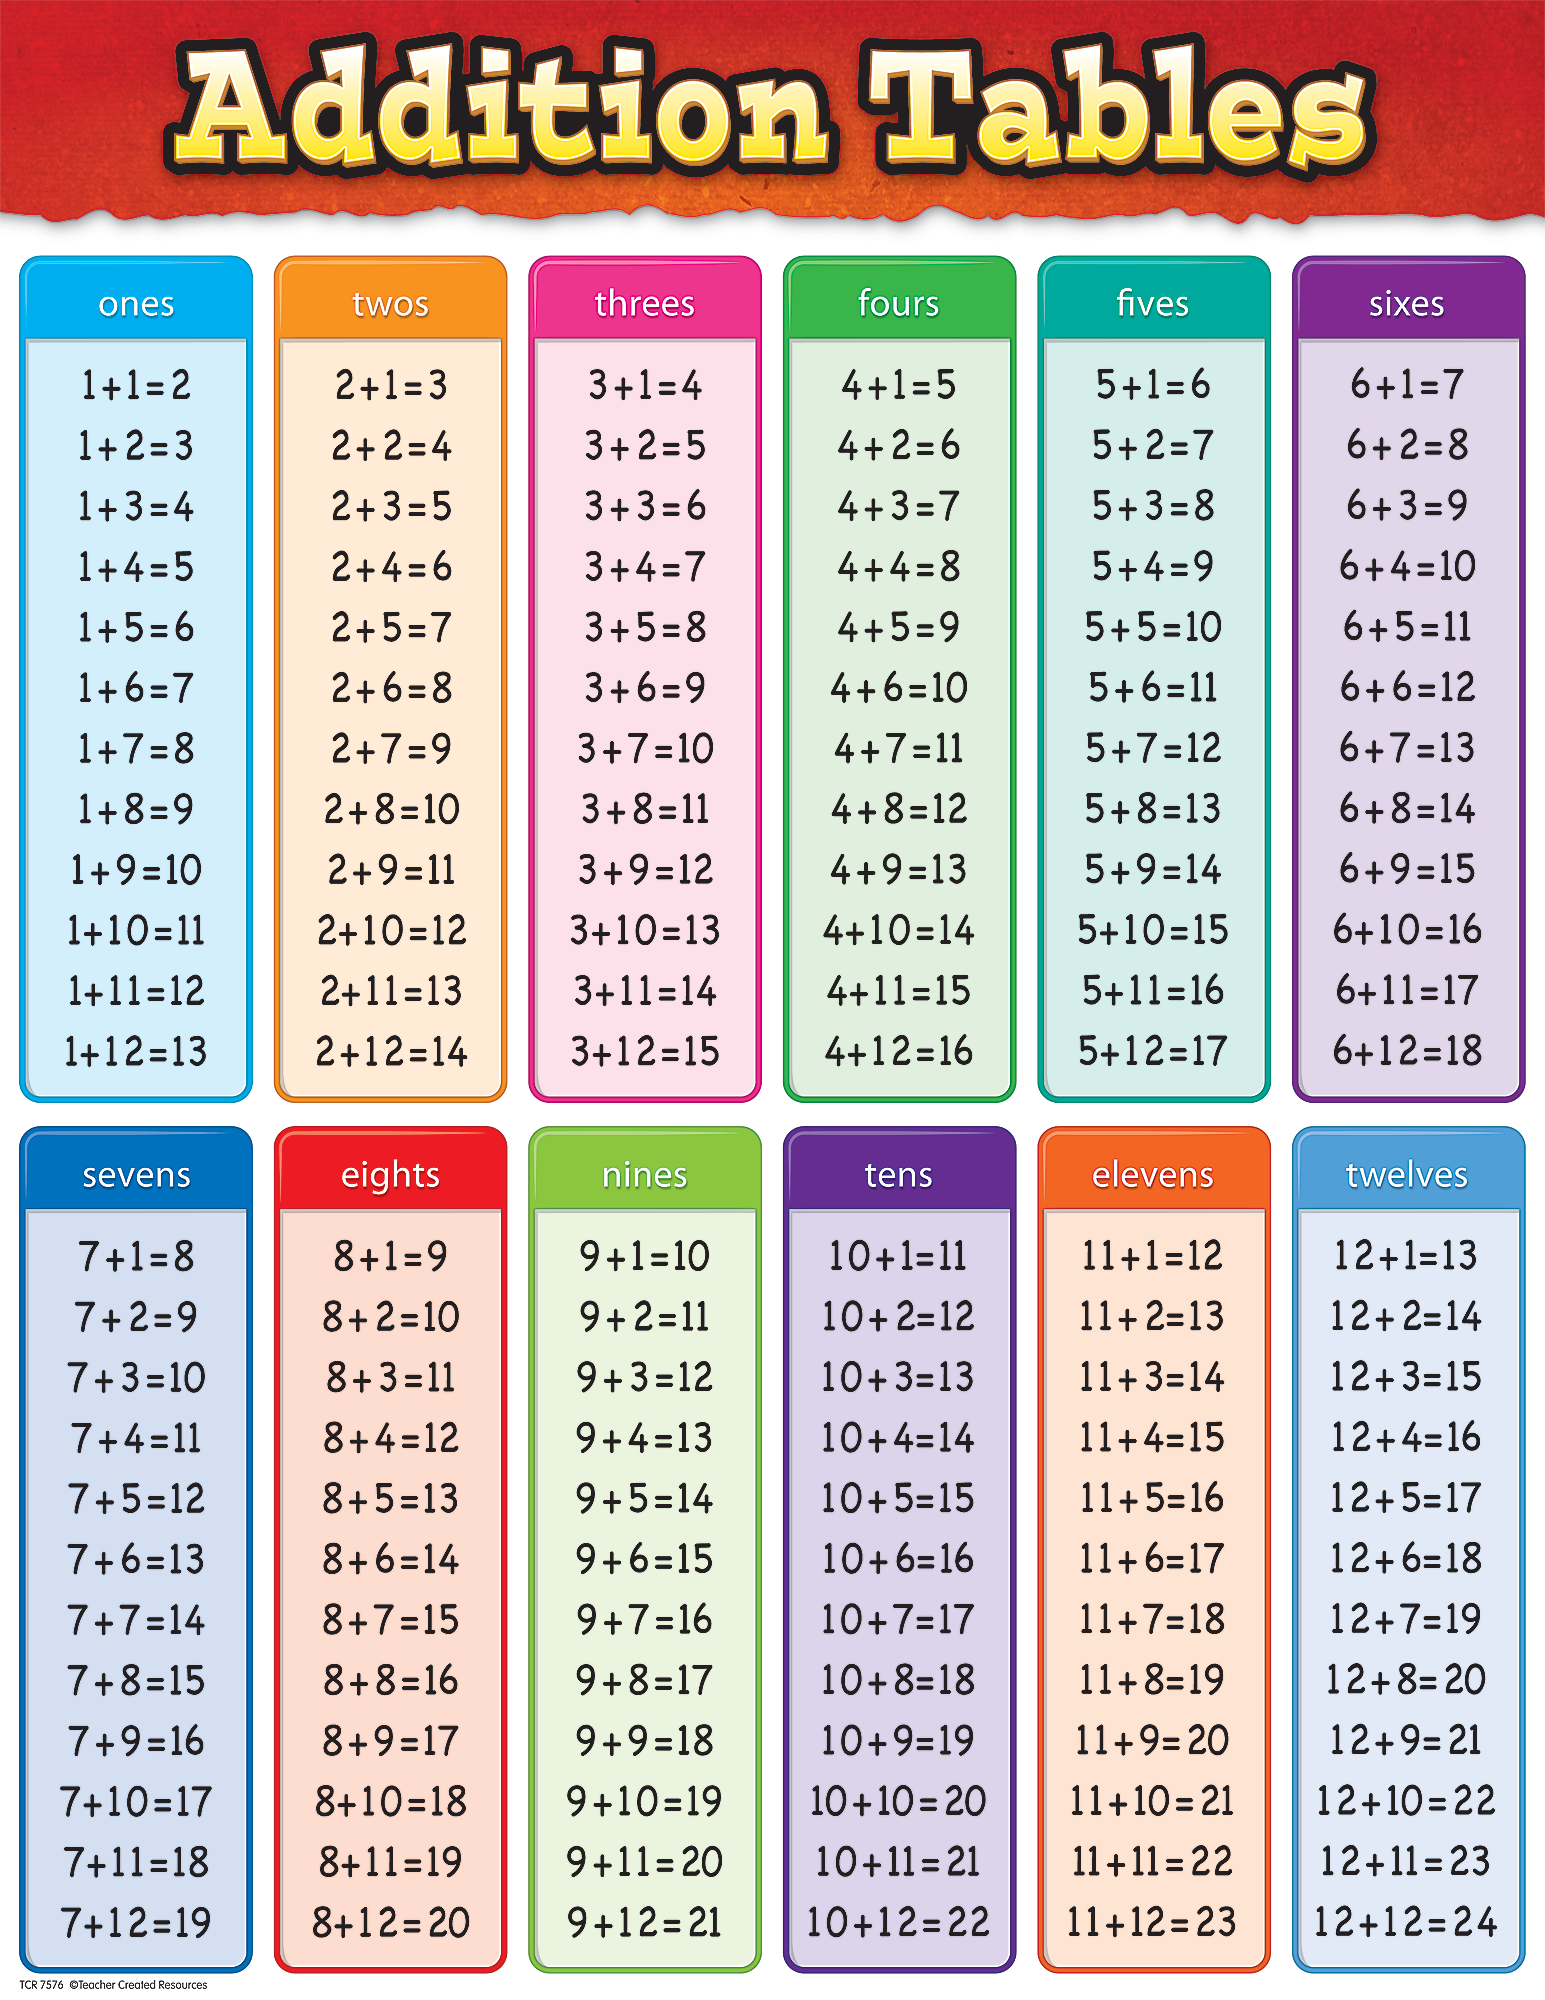 Addition Tables Chart - TCR7576 | Teacher Created Resources